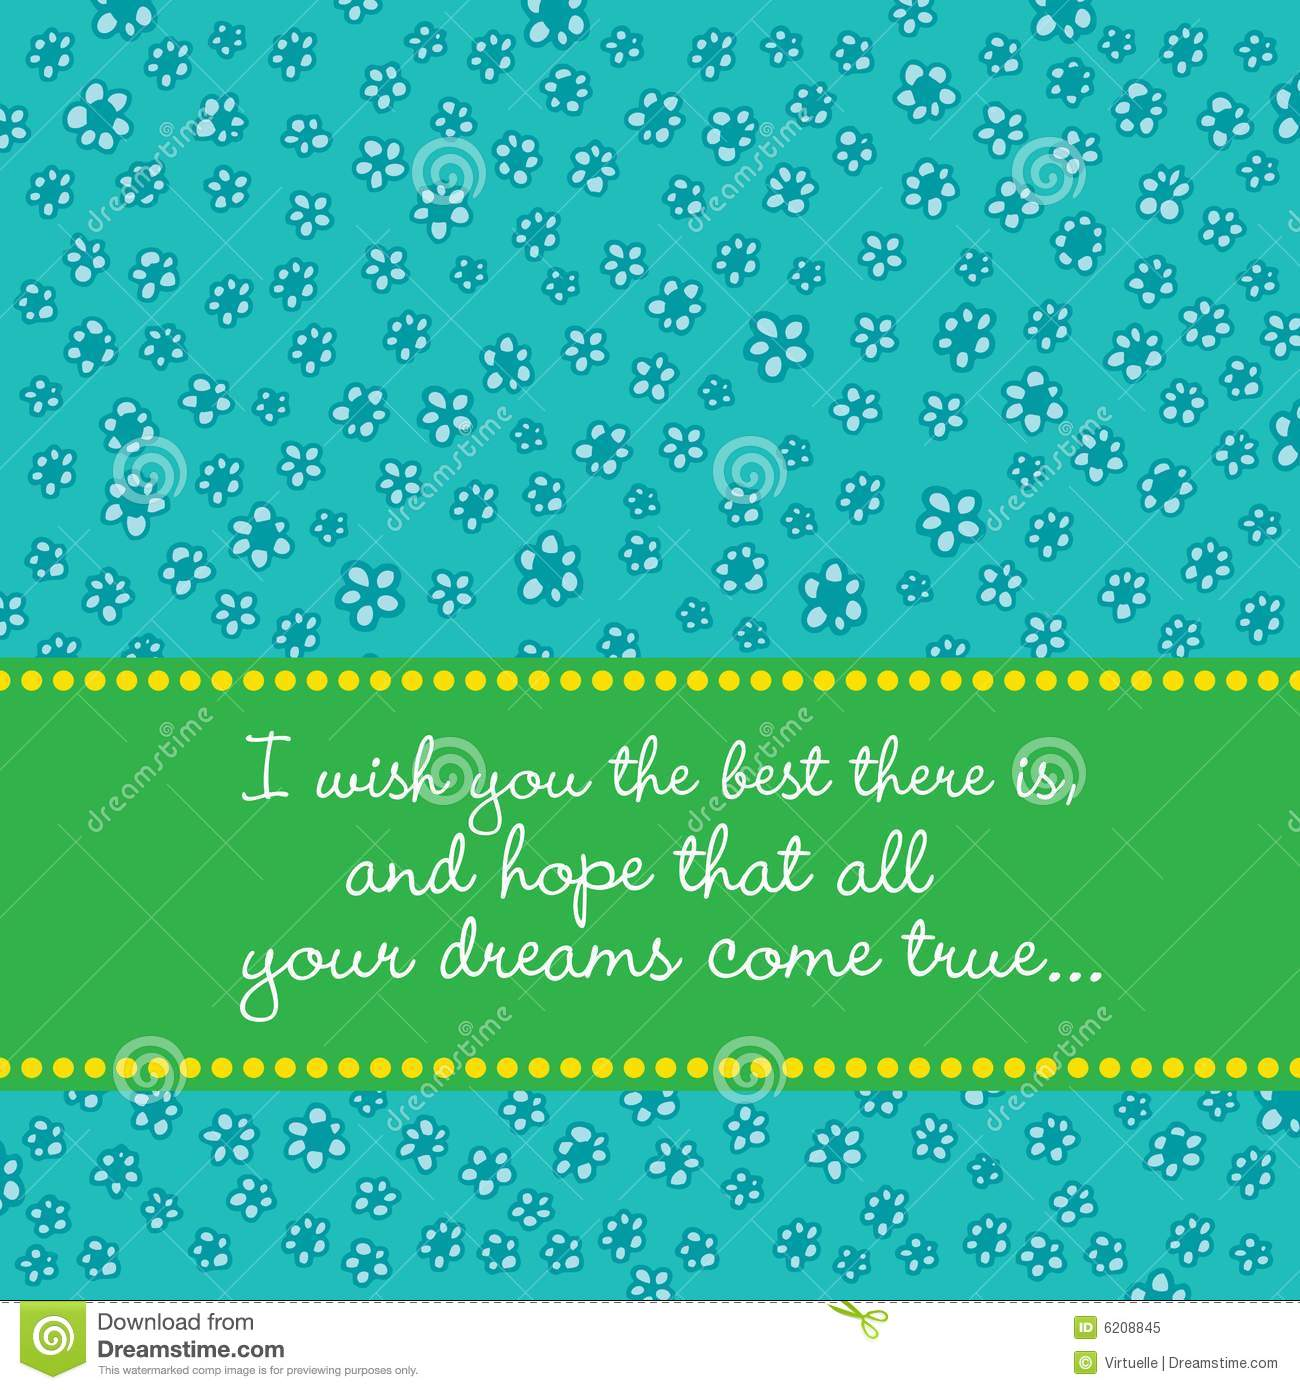 Best Wishes Card With Retro Flower Background Royalty Free Stock Photo - Image: 6208845